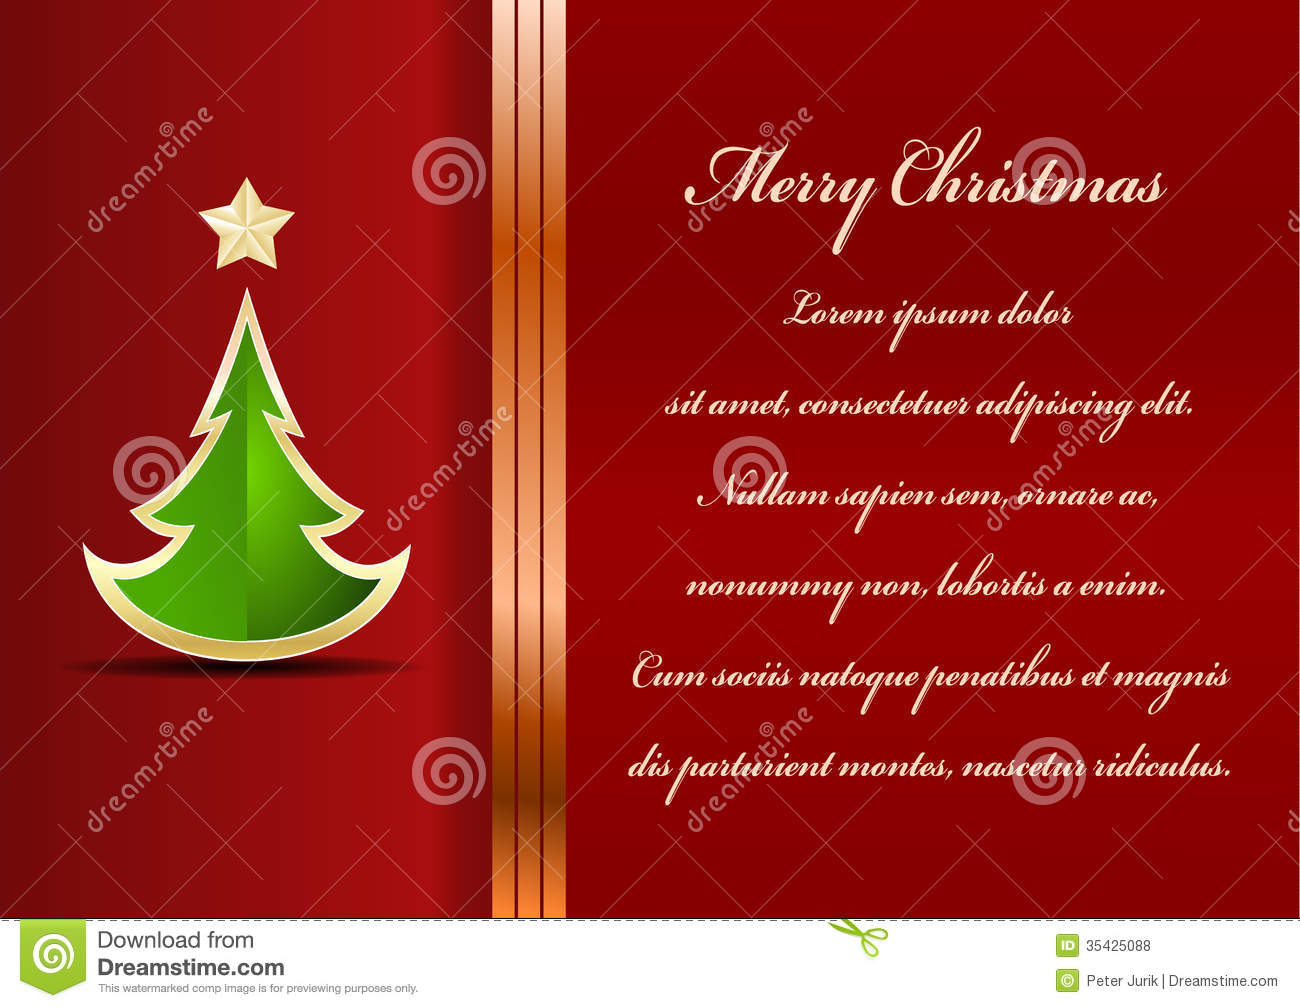 Free christmas text selol ink free christmas text m4hsunfo